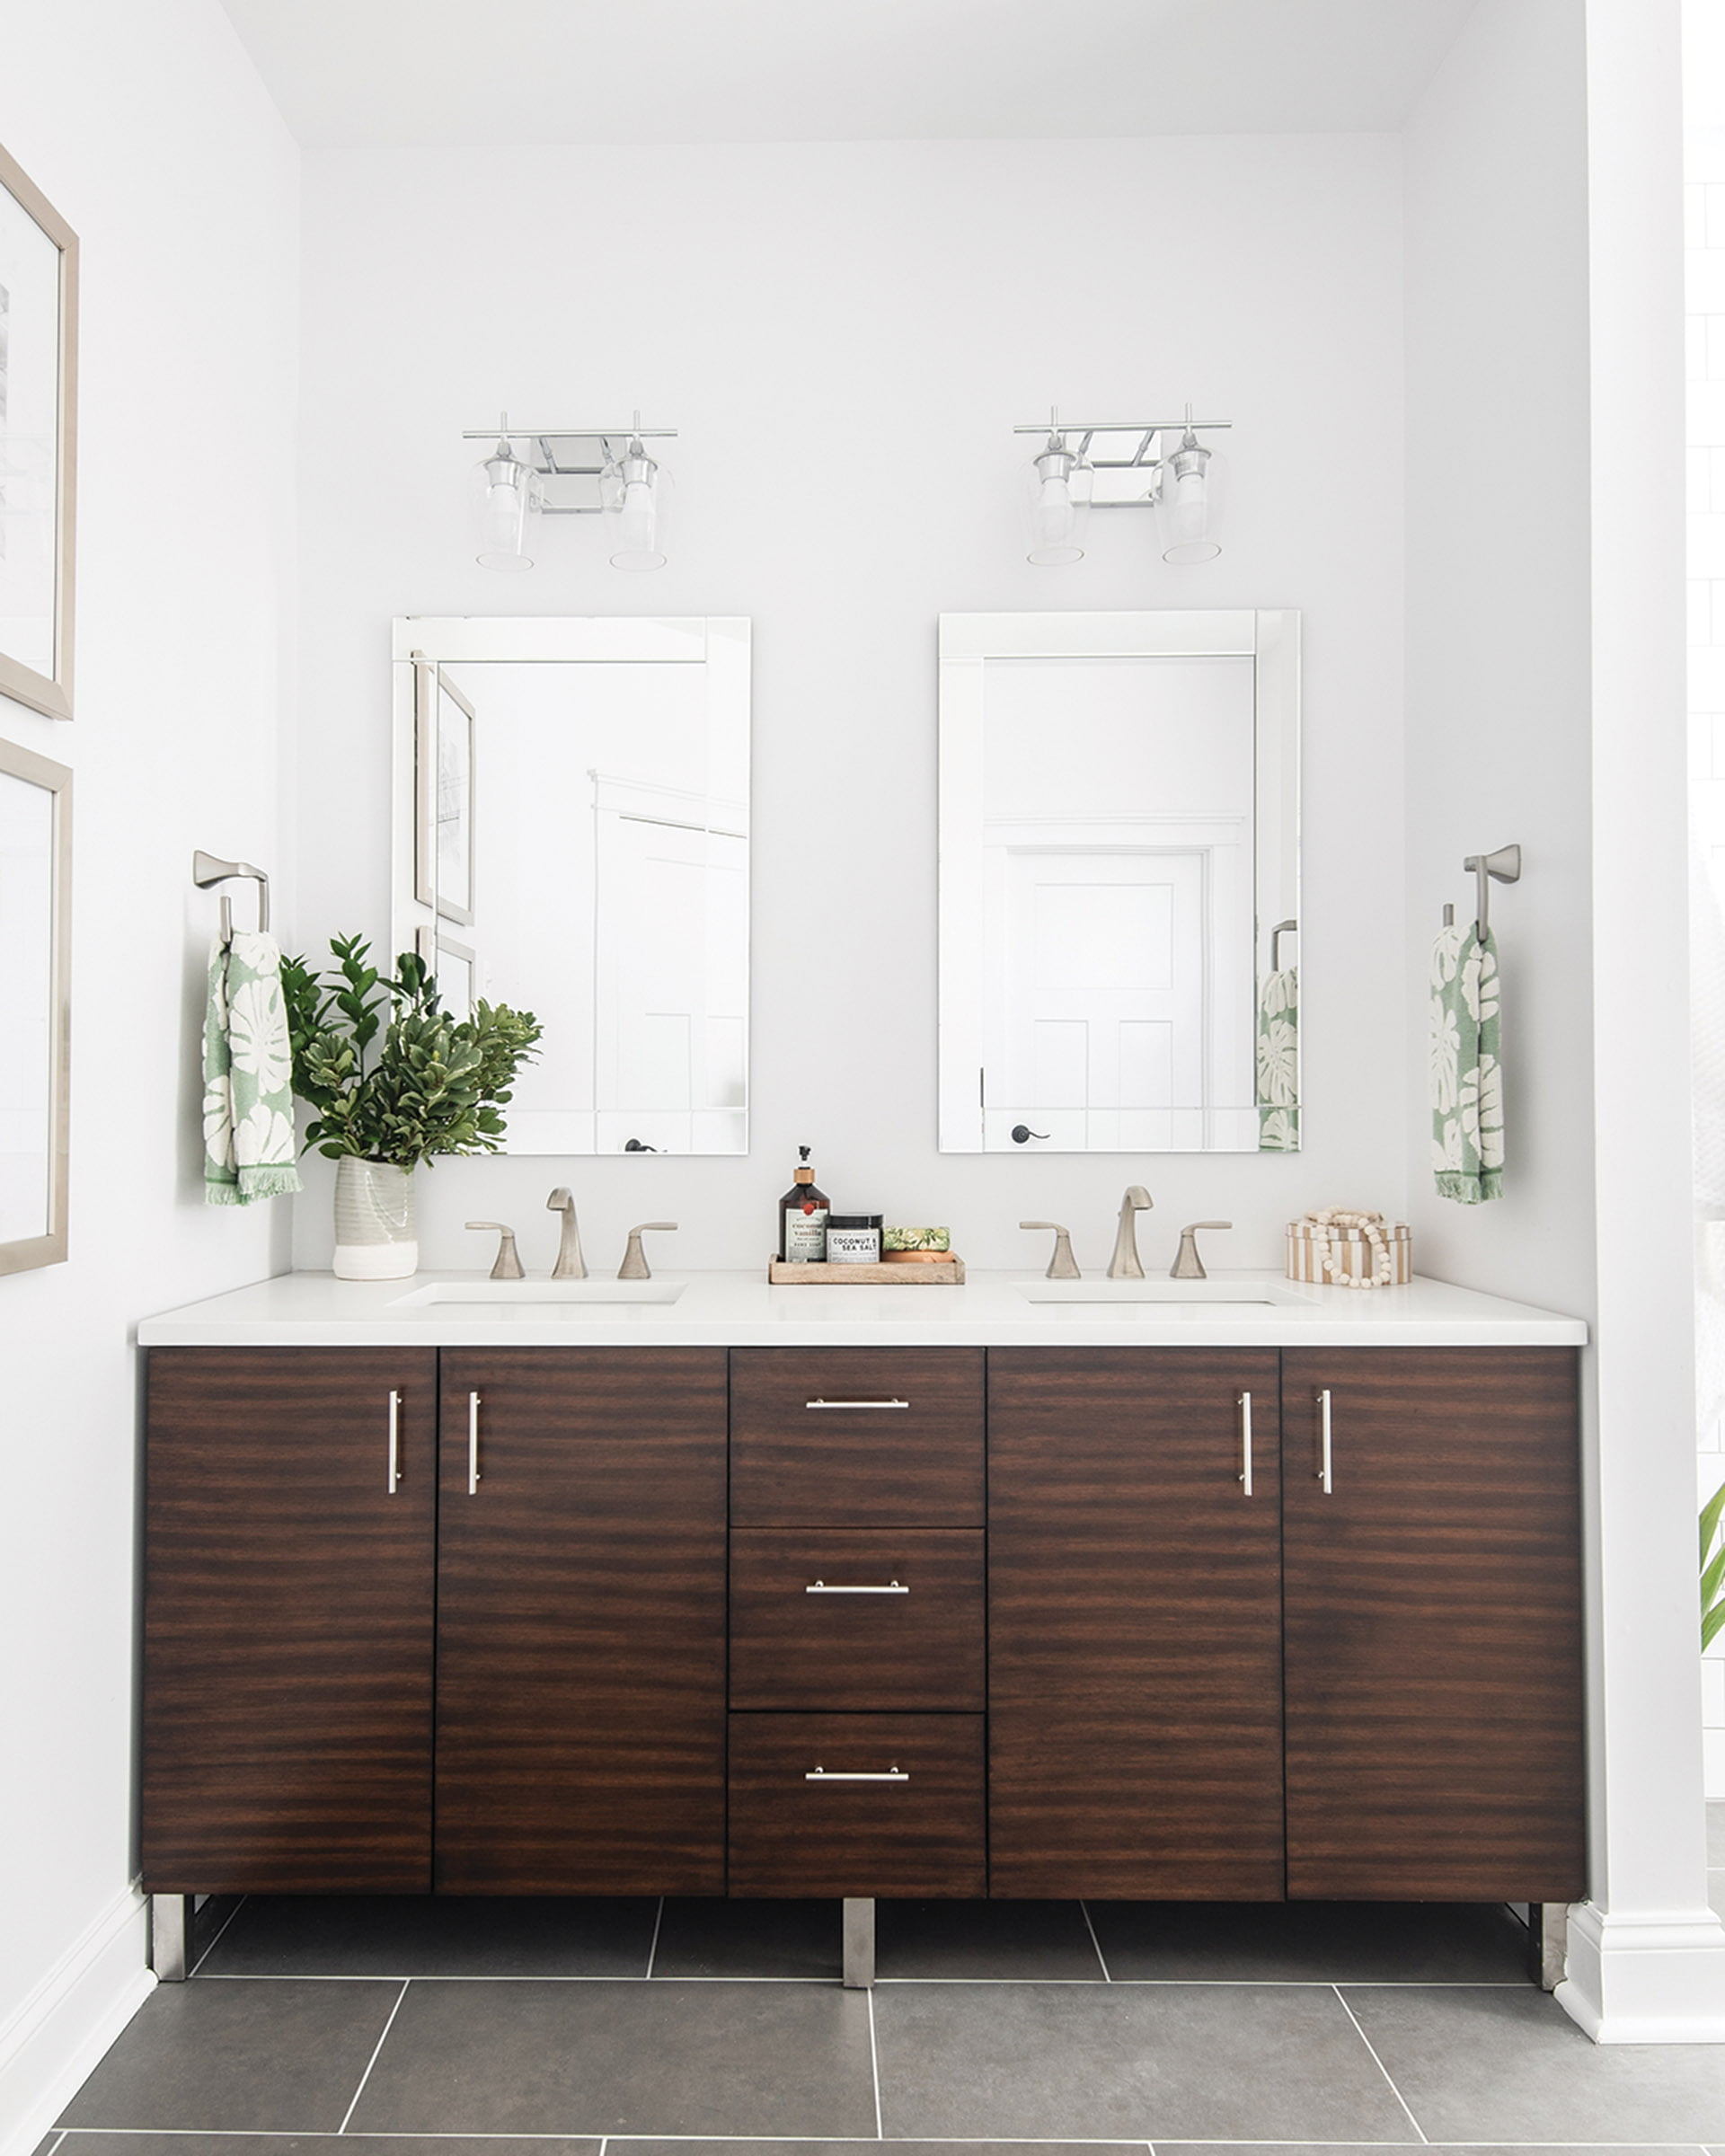 Bath boasts a wooden vanity and a porcelain floor